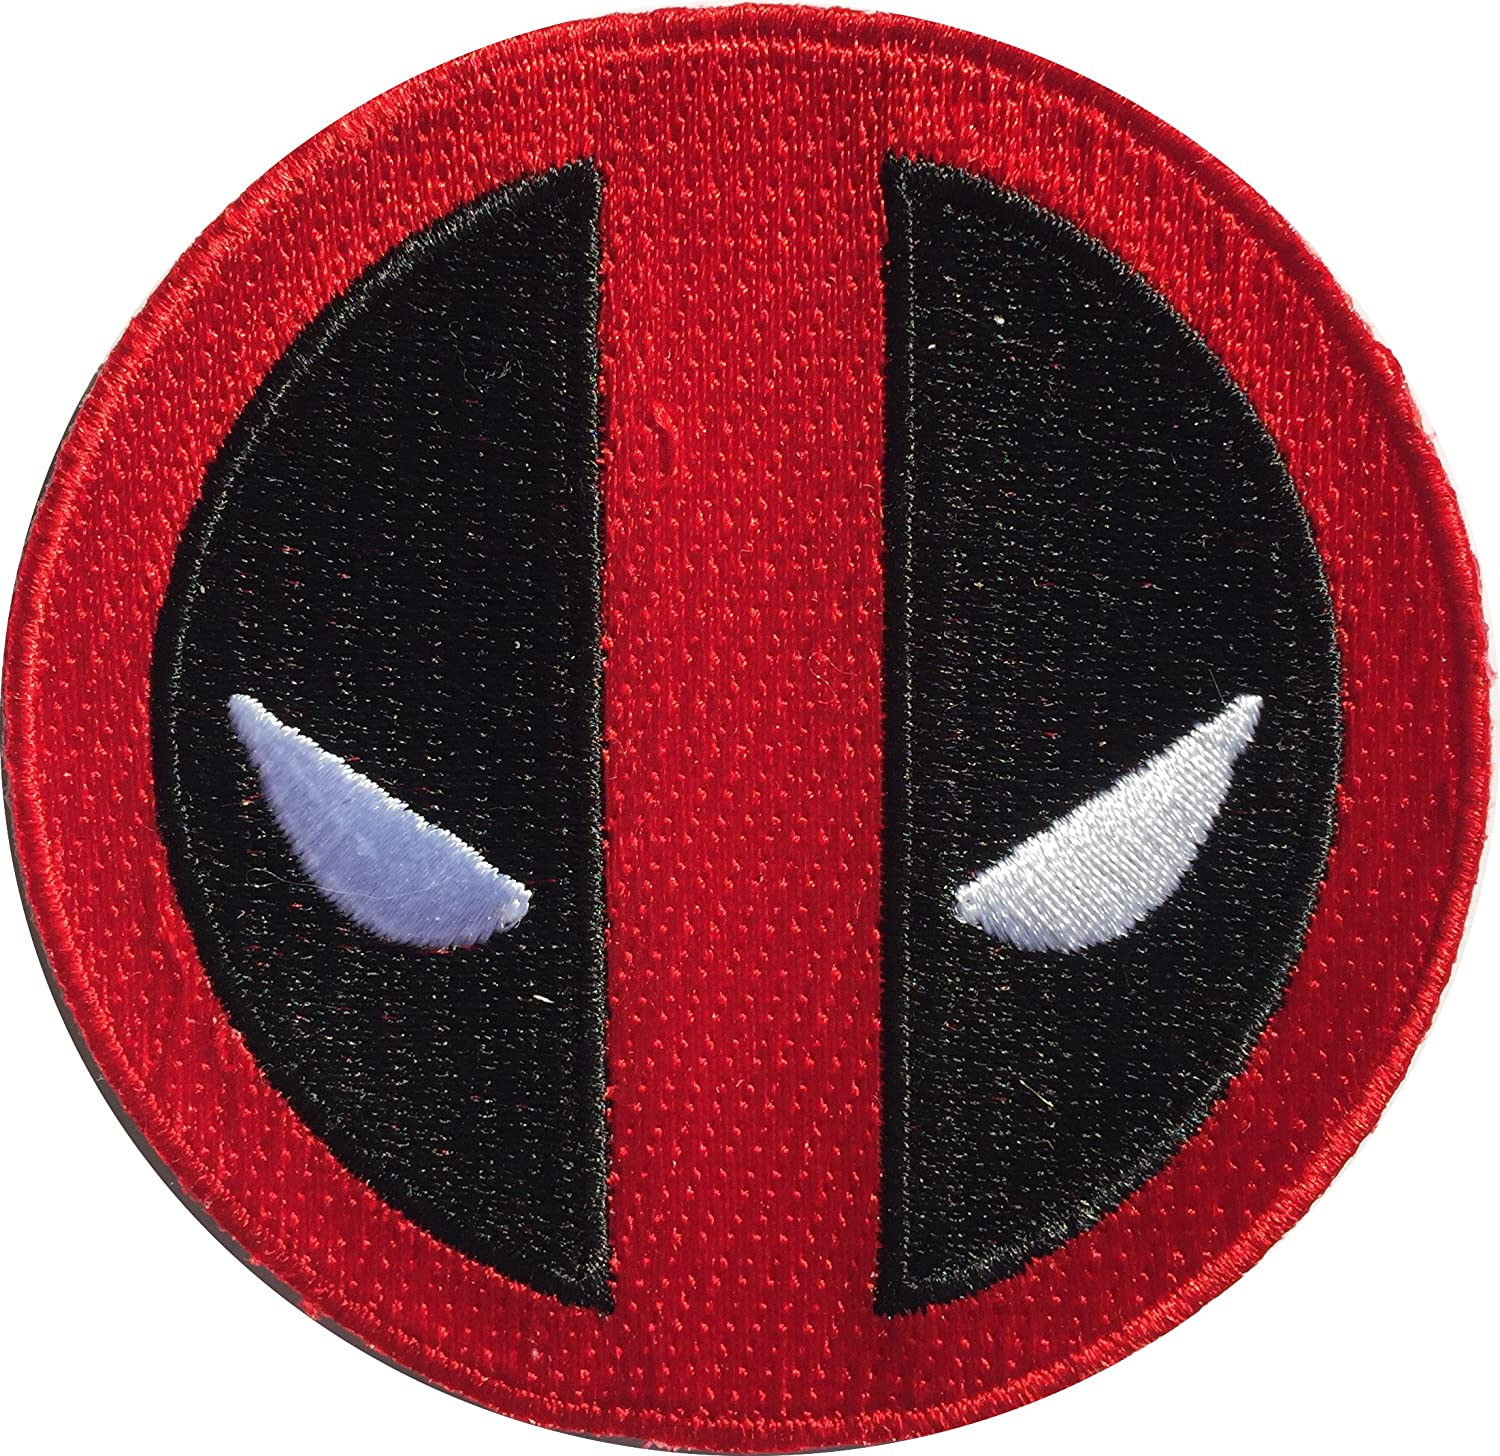 Patch Squad Men's Application Marvel Extreme Deadpool Icon Patch PS-AMDP-IRDBK